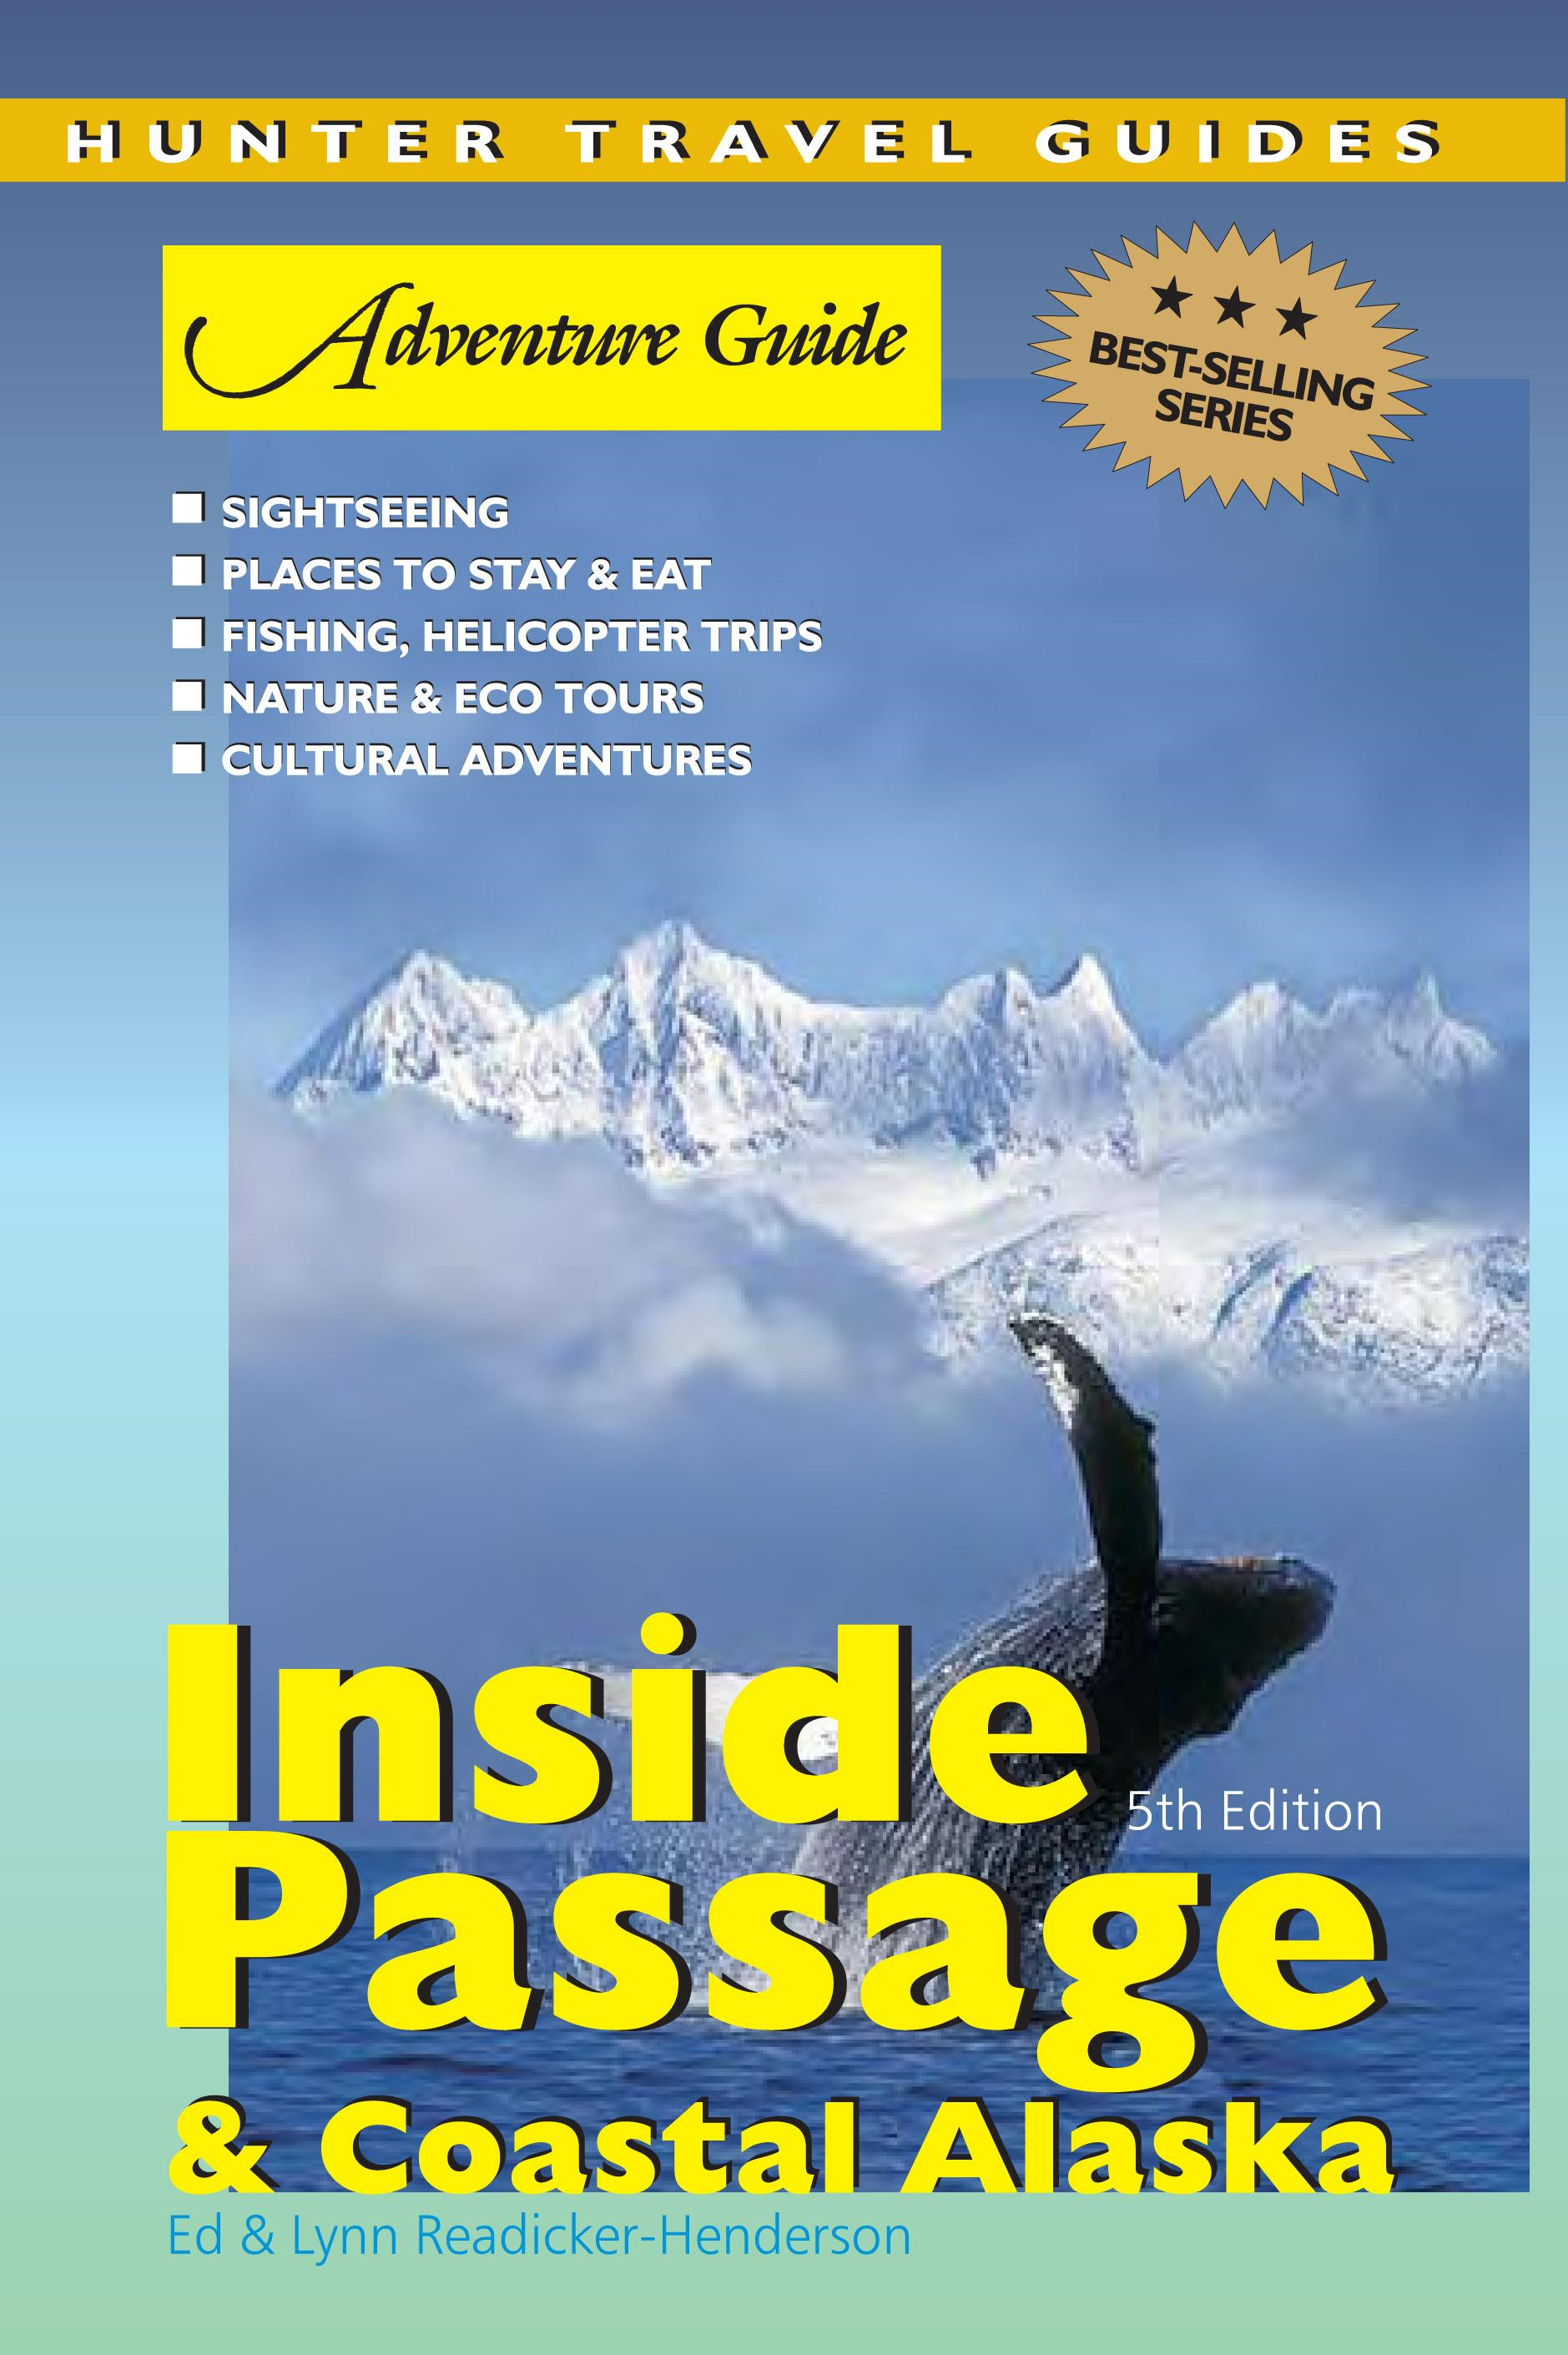 Adventure Guide to the Inside Passage & Coastal Alaska